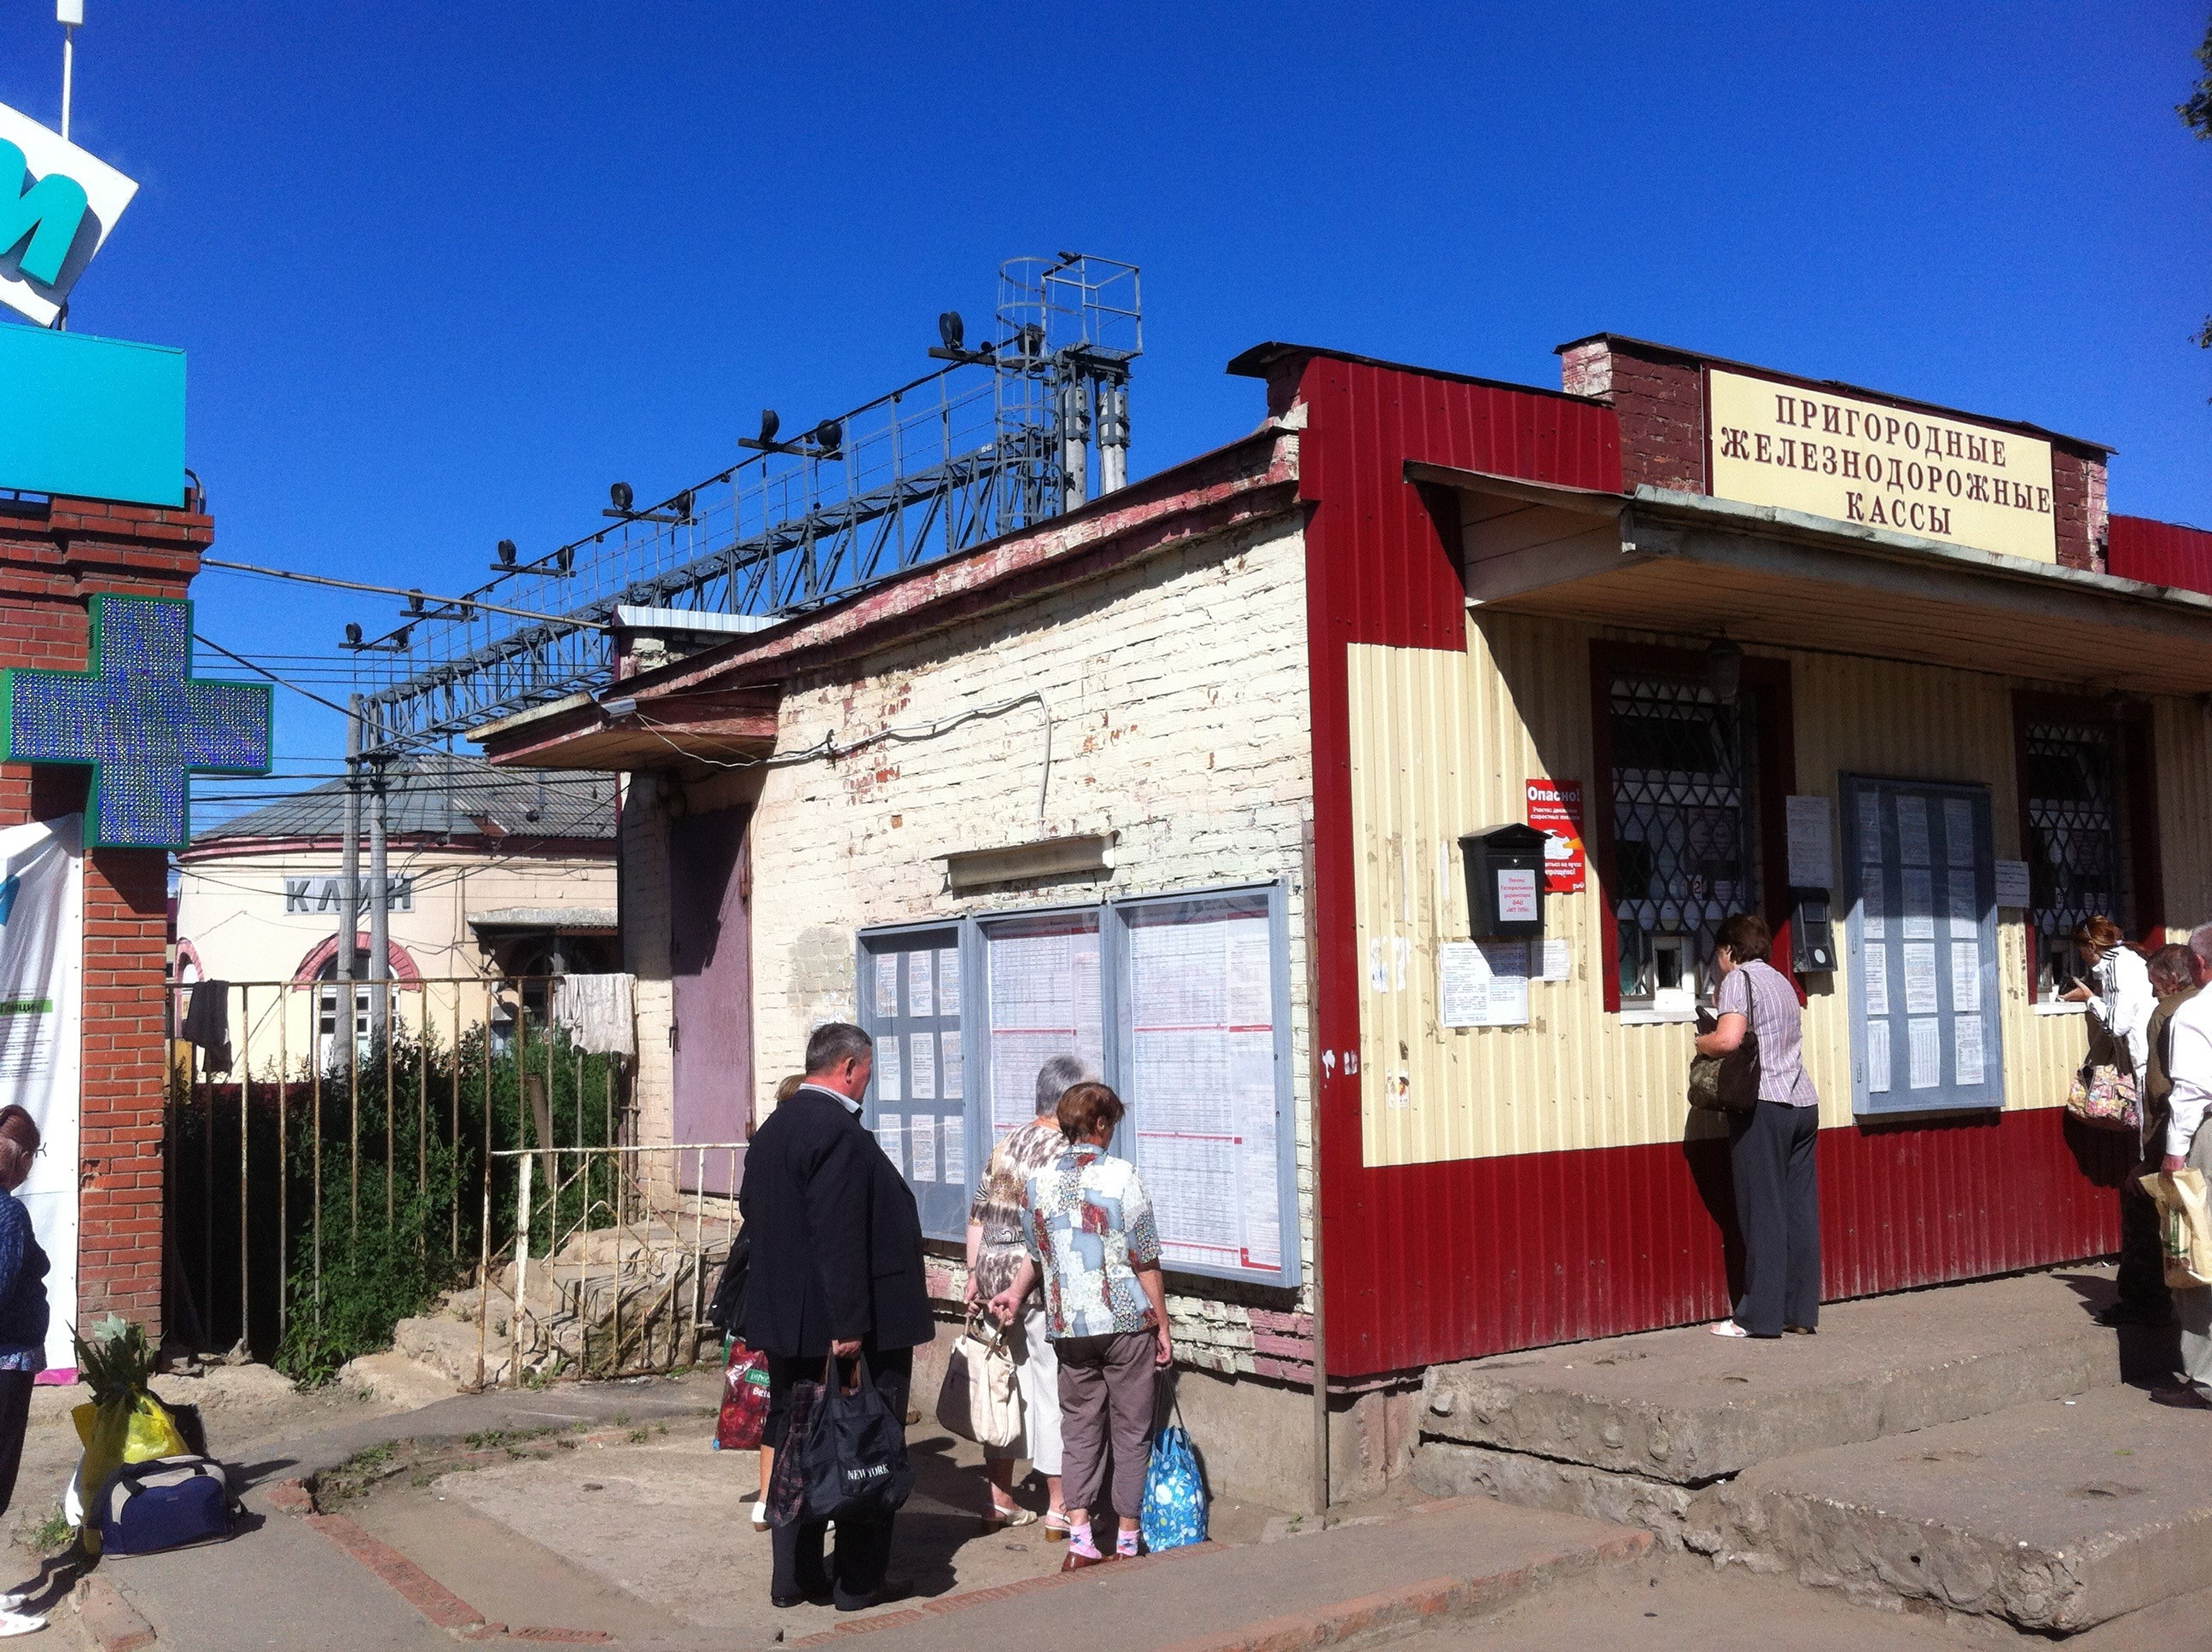 Buying train tickets at Klin station.